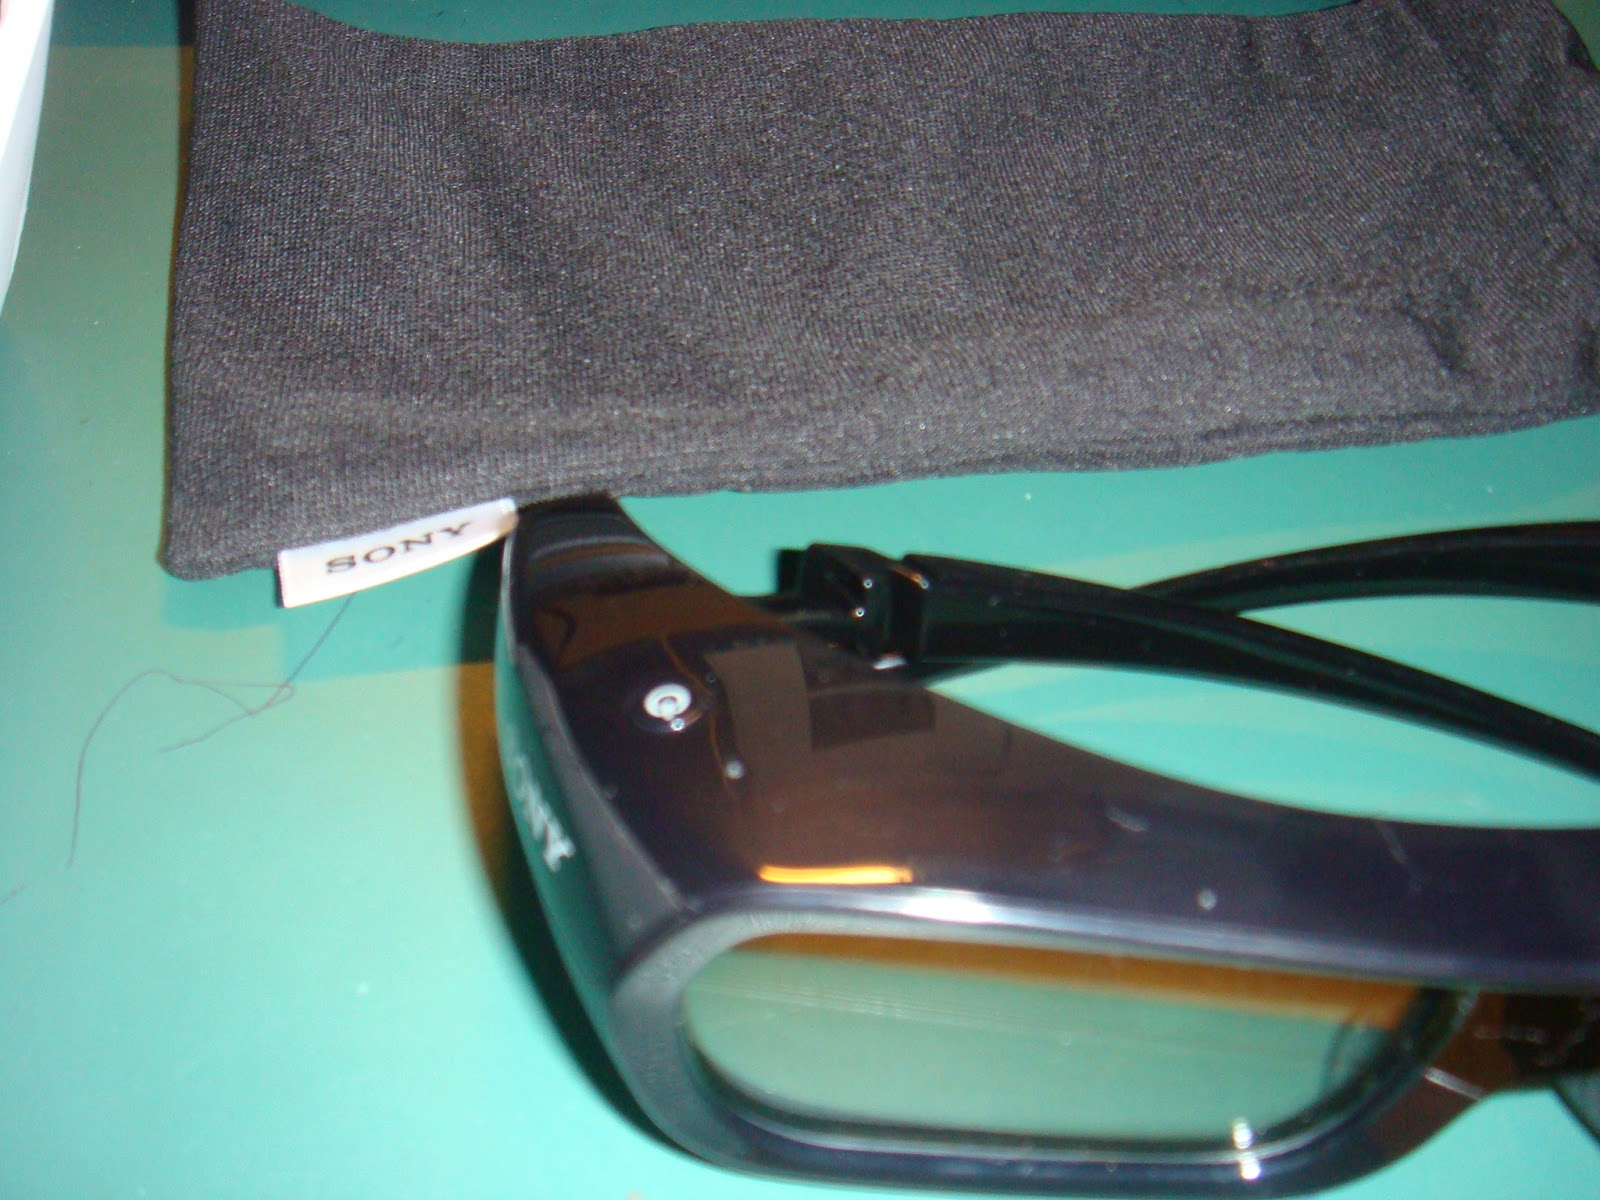 PC Parts and Accessories: Sony 3D Glasses TDG-BR250 and Sony